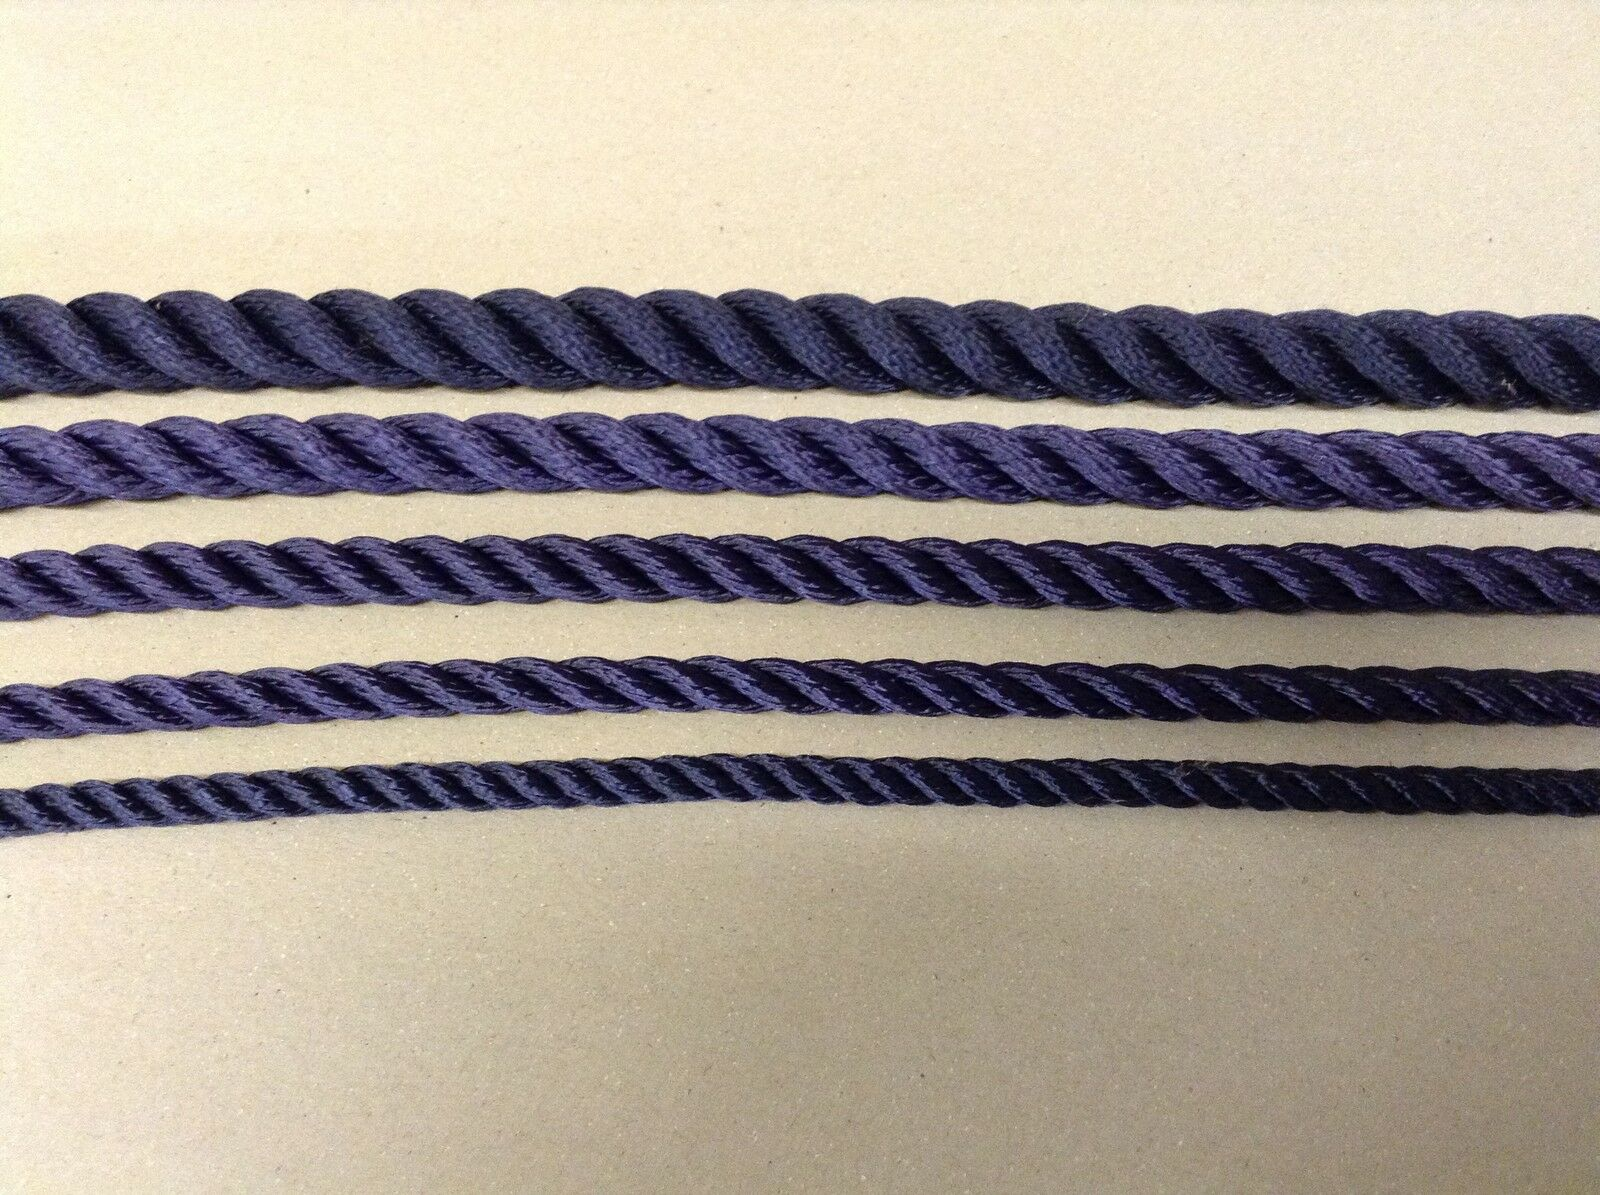 Navy bluee 3 strand Polyester Strong Good Quality rope Ideal for Mooring ++